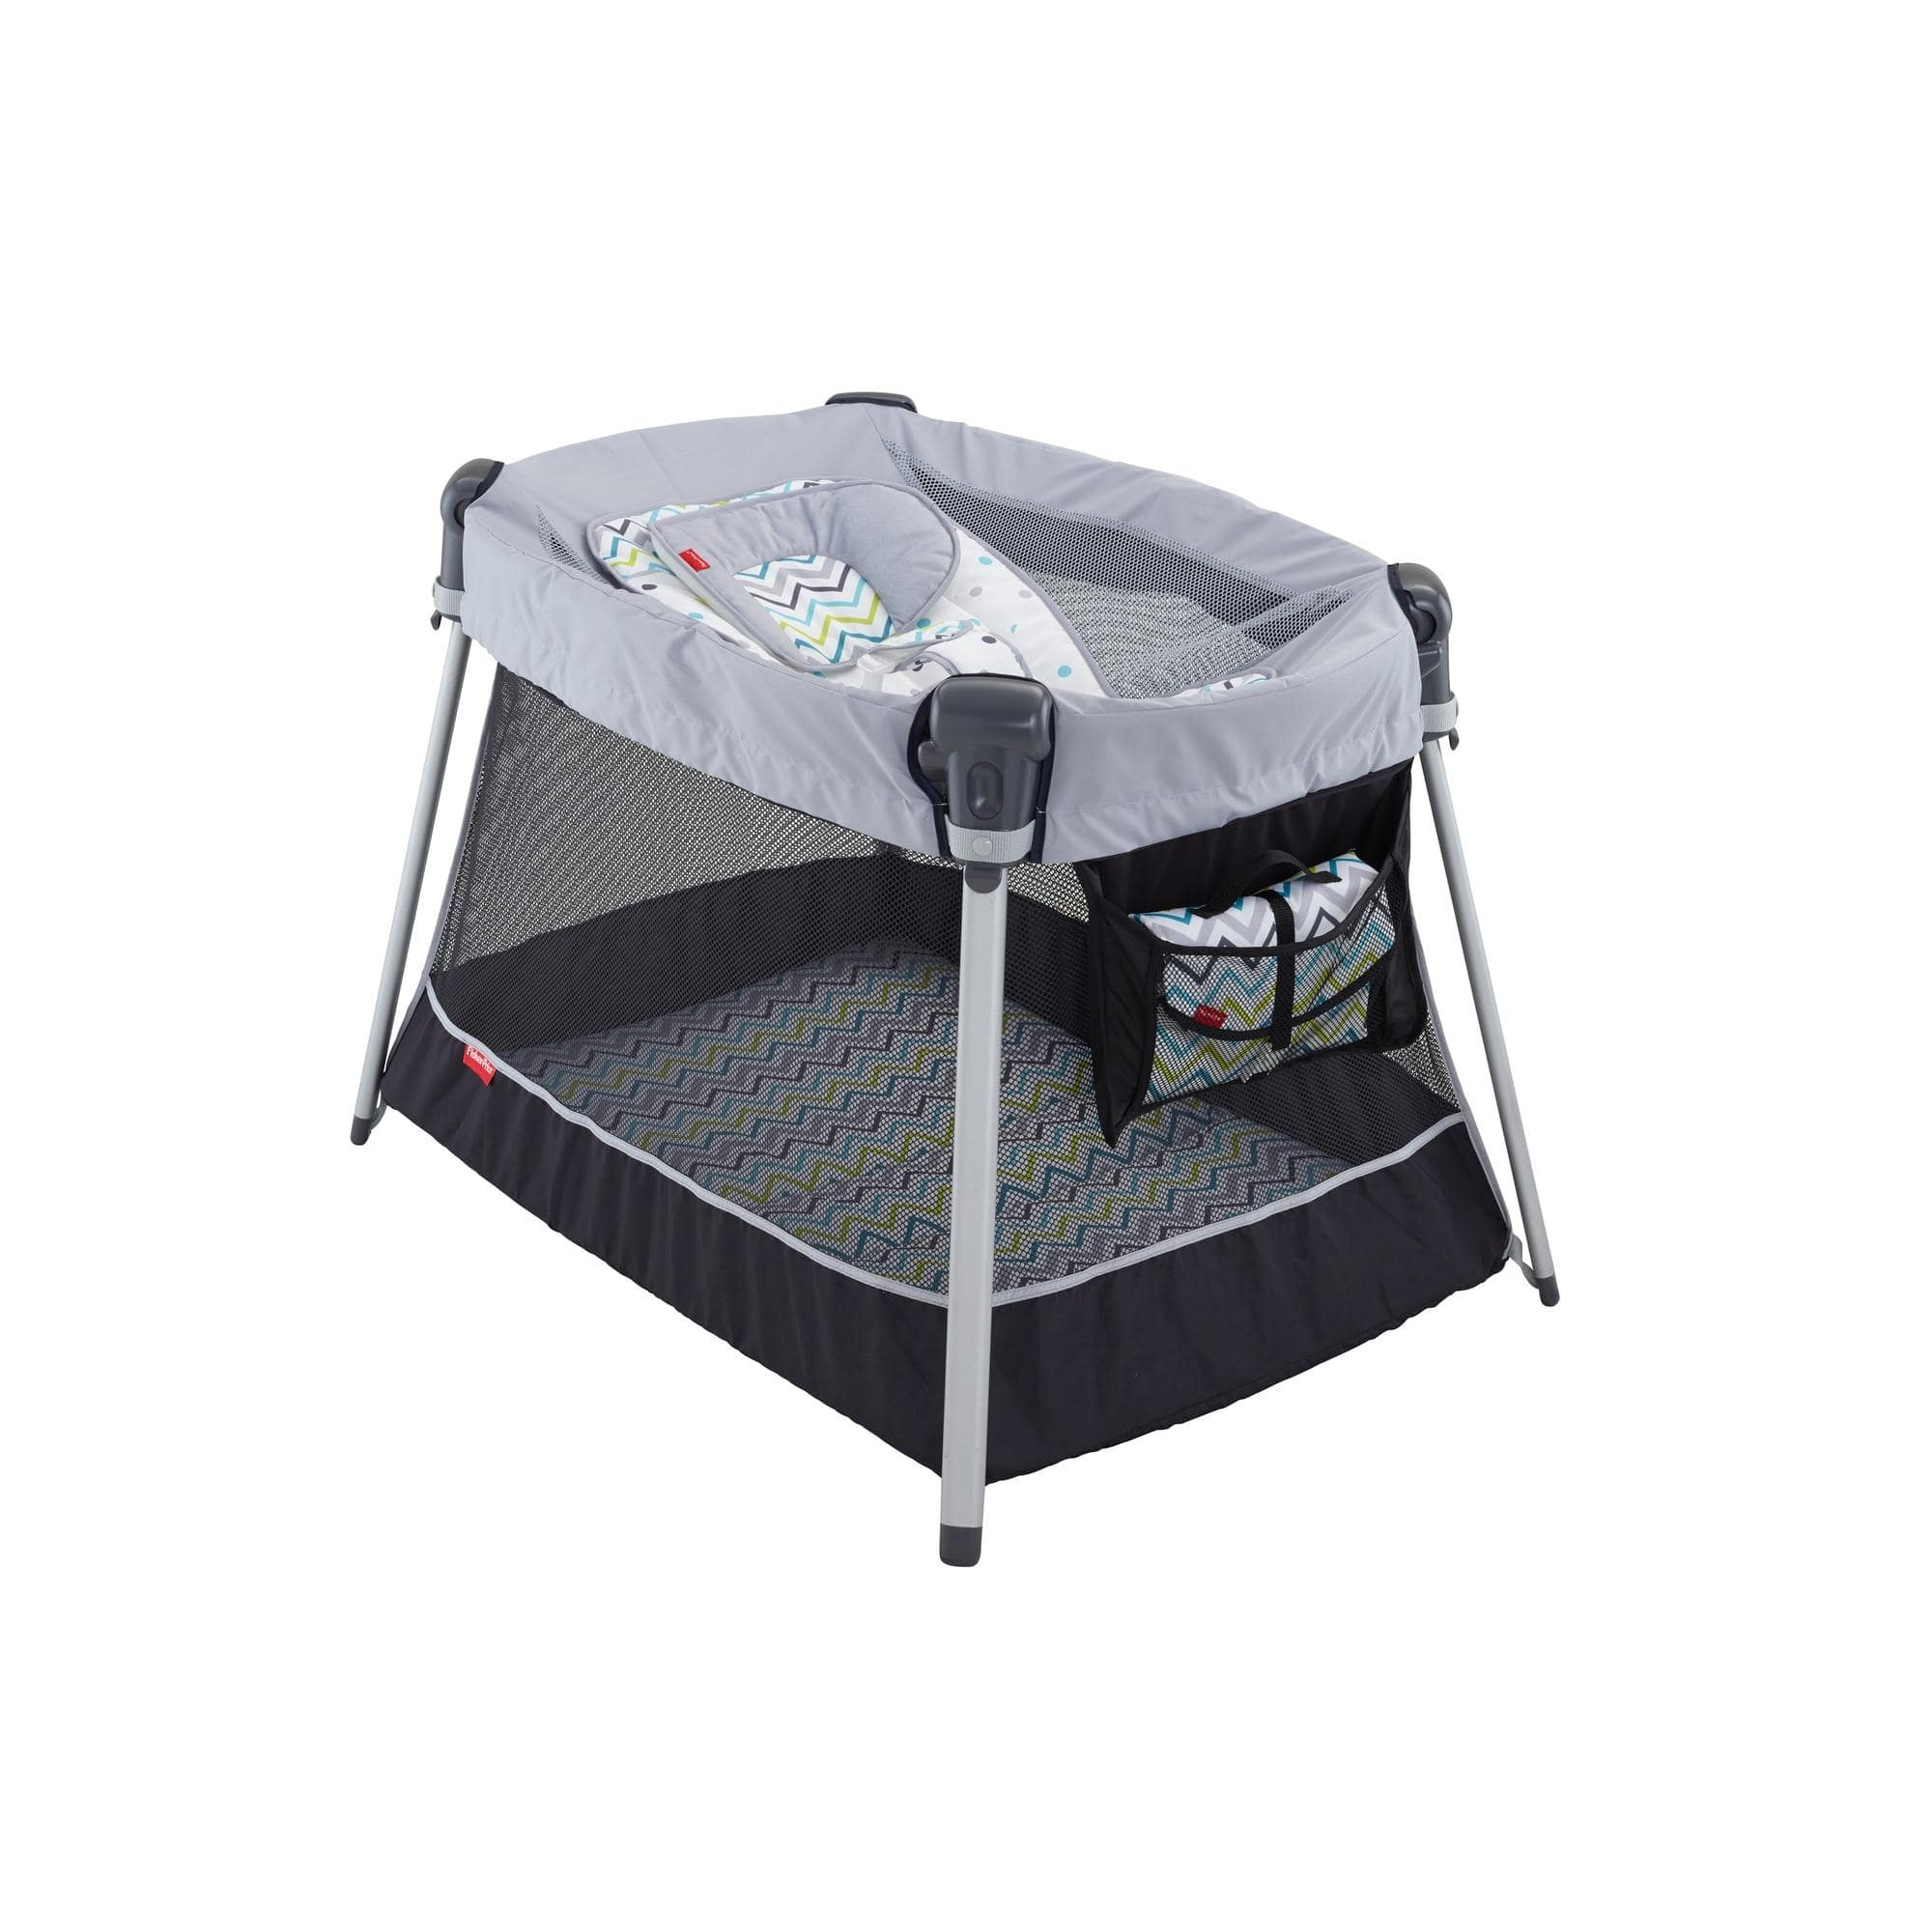 Fisher-Price Ultra-Lite Day & Night Play Yard $56.56 + Free Shipping ~ Walmart or Amazon for Prime Members